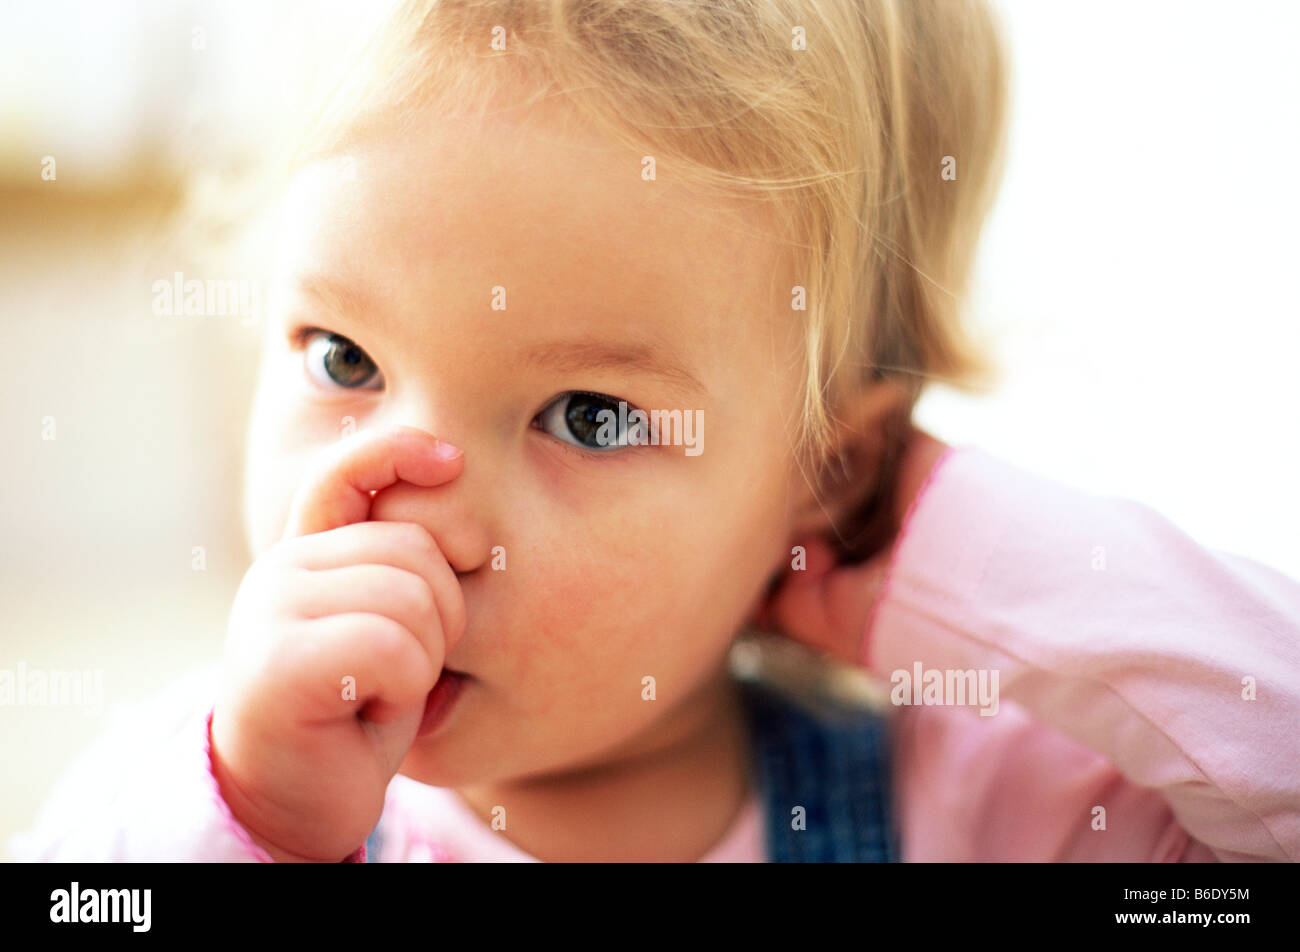 Young girl sucking thumb. - Stock Image